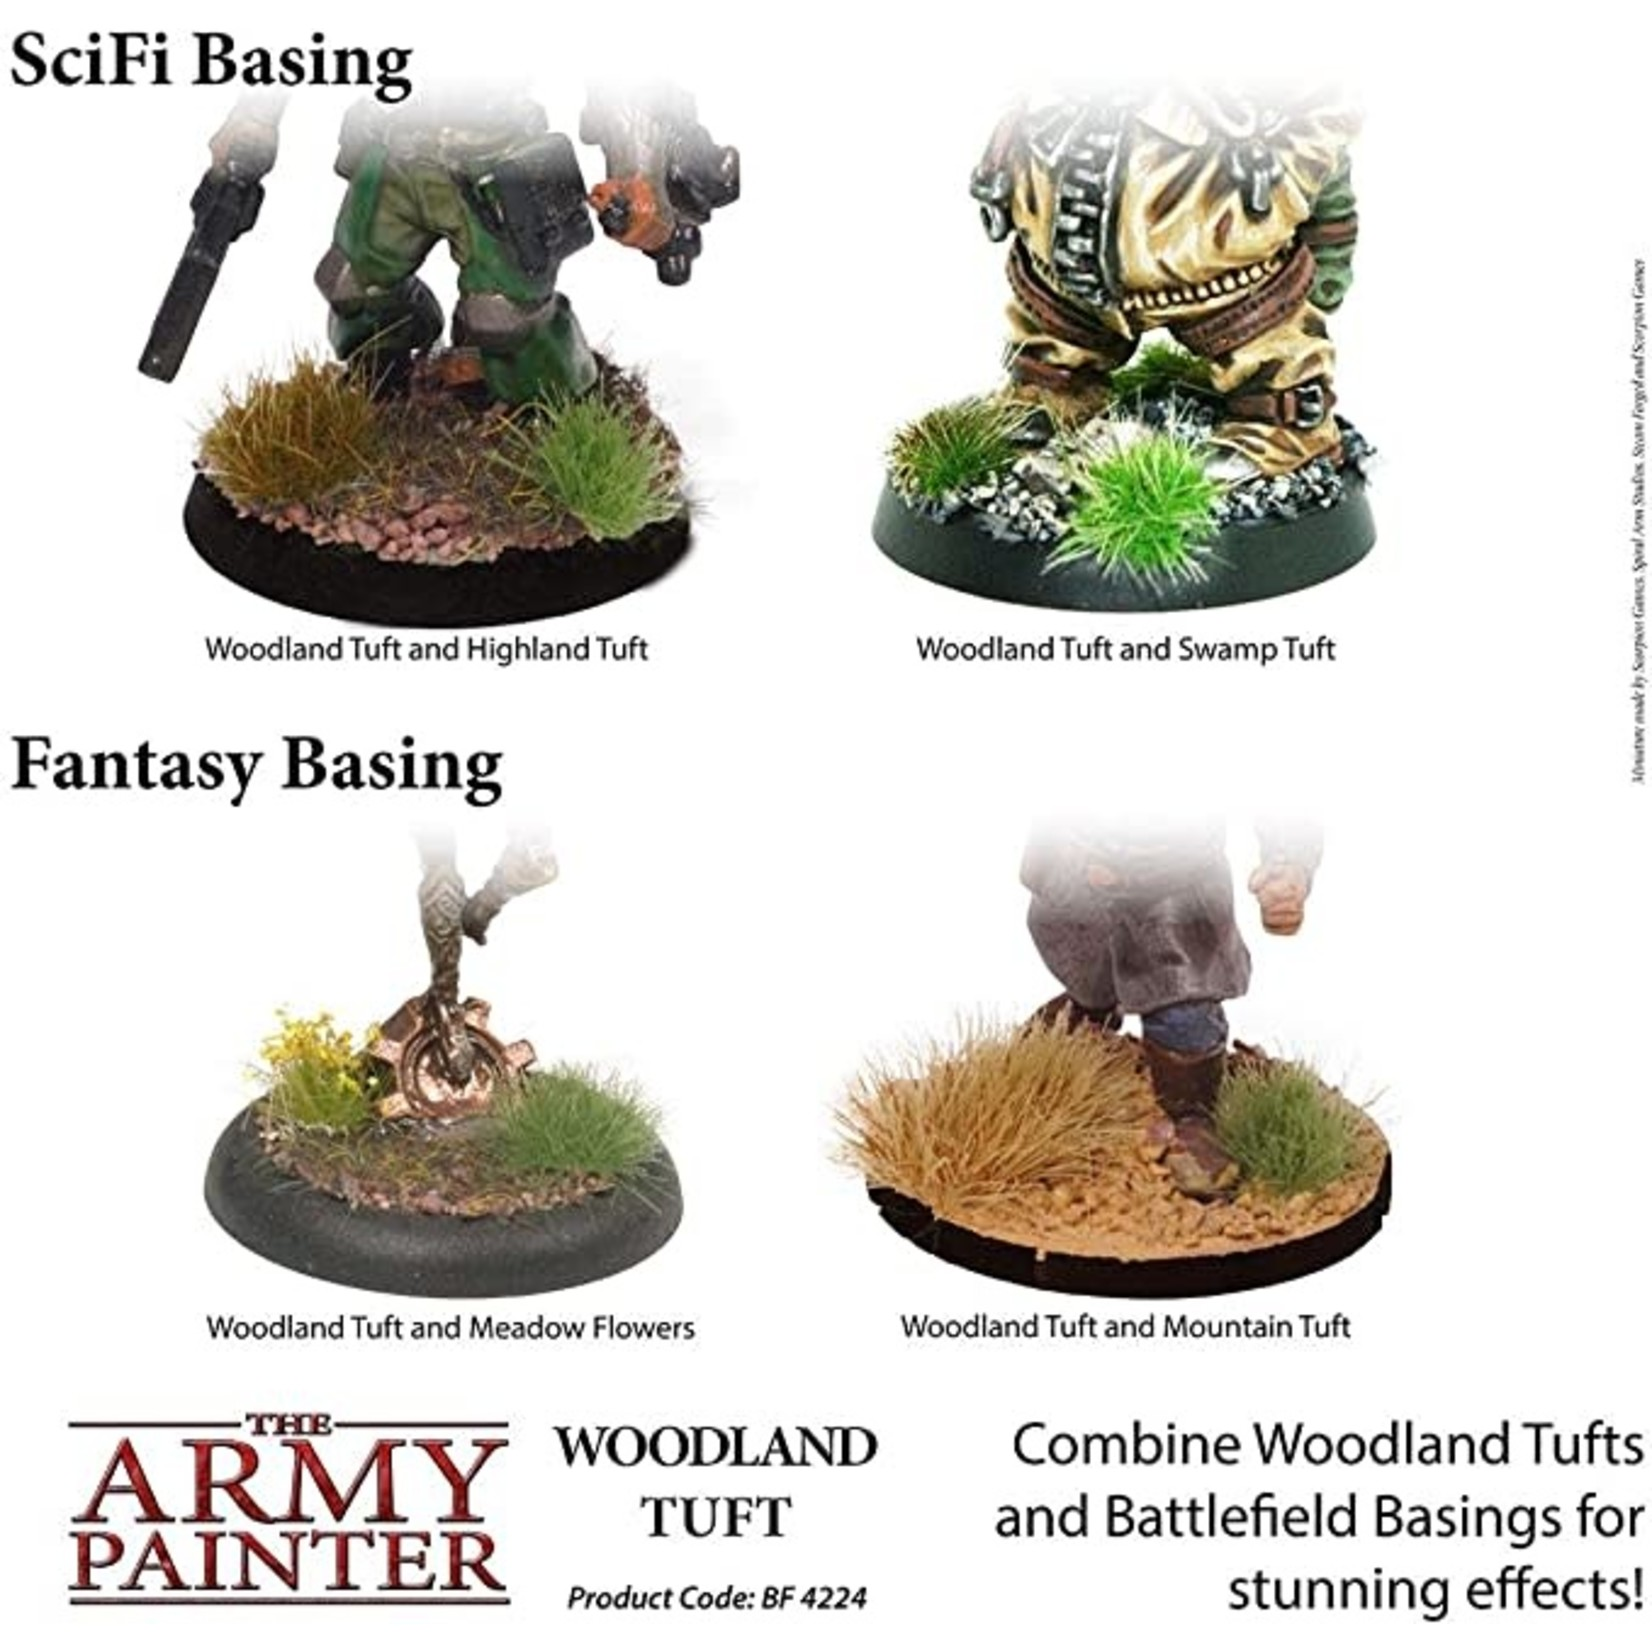 THE ARMY PAINTER WOODLAND TUFT